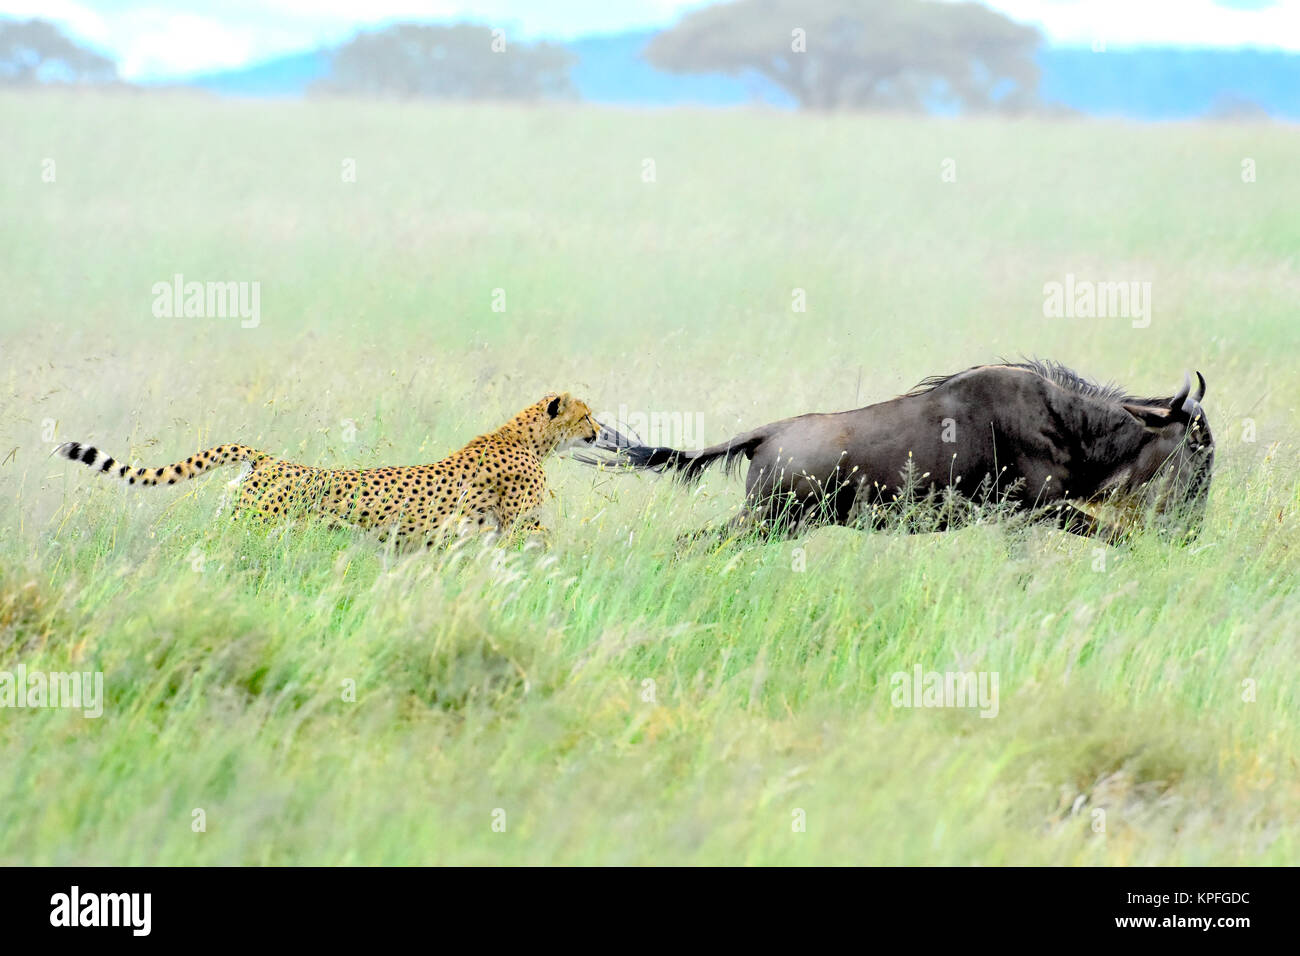 Wildlife sightseeing in one of the prime wildlife destinations on earht -- Serengeti, Tanzania. Cheetah chasing - Stock Image